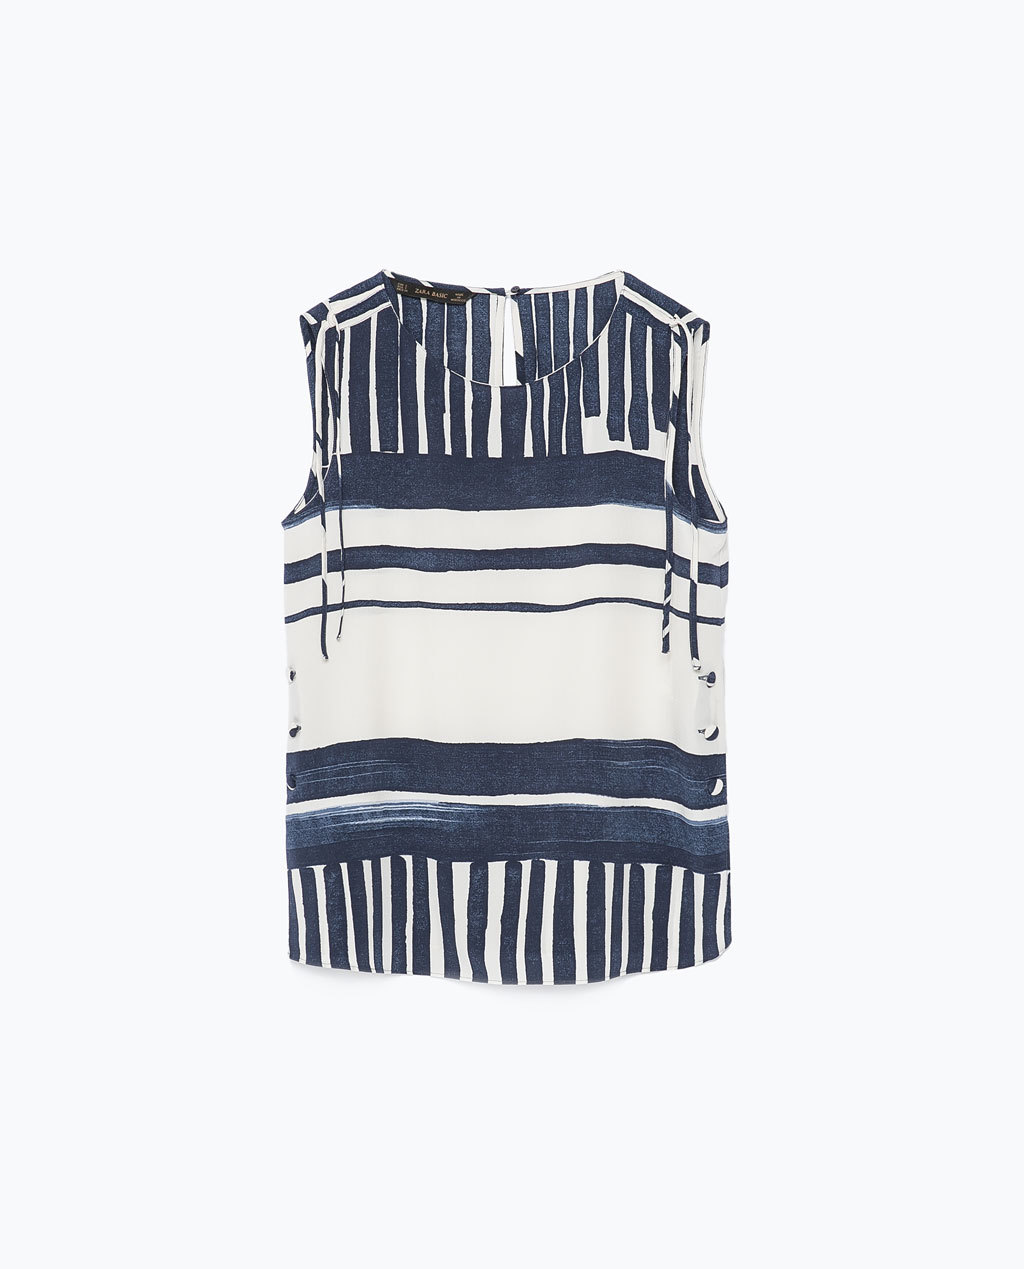 Striped Top - sleeve style: sleeveless; pattern: striped; secondary colour: ivory/cream; predominant colour: navy; occasions: casual, holiday, creative work; length: standard; style: top; fibres: polyester/polyamide - 100%; fit: straight cut; neckline: crew; sleeve length: sleeveless; pattern type: fabric; pattern size: standard; texture group: woven light midweight; season: s/s 2015; wardrobe: highlight